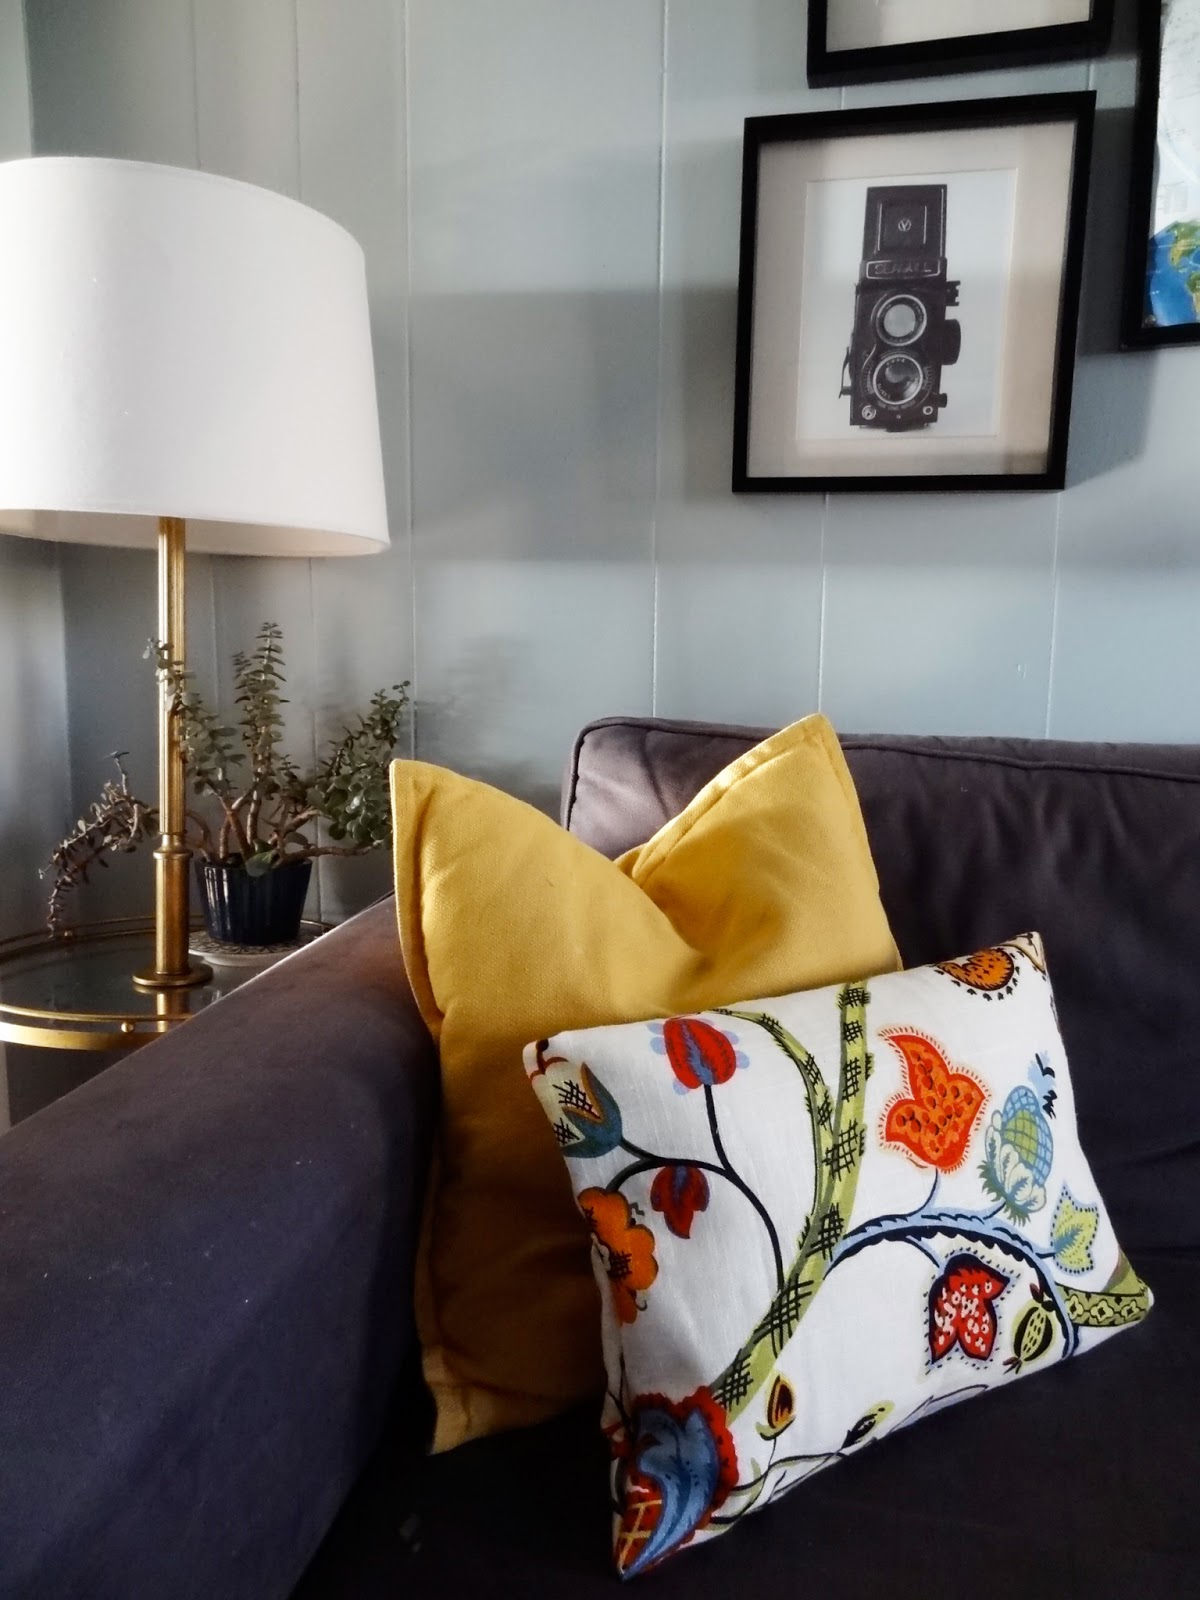 Home Goods Sofa Covers Tail Diy Sew Your Own Simple Pillow Cover Revamp Homegoods